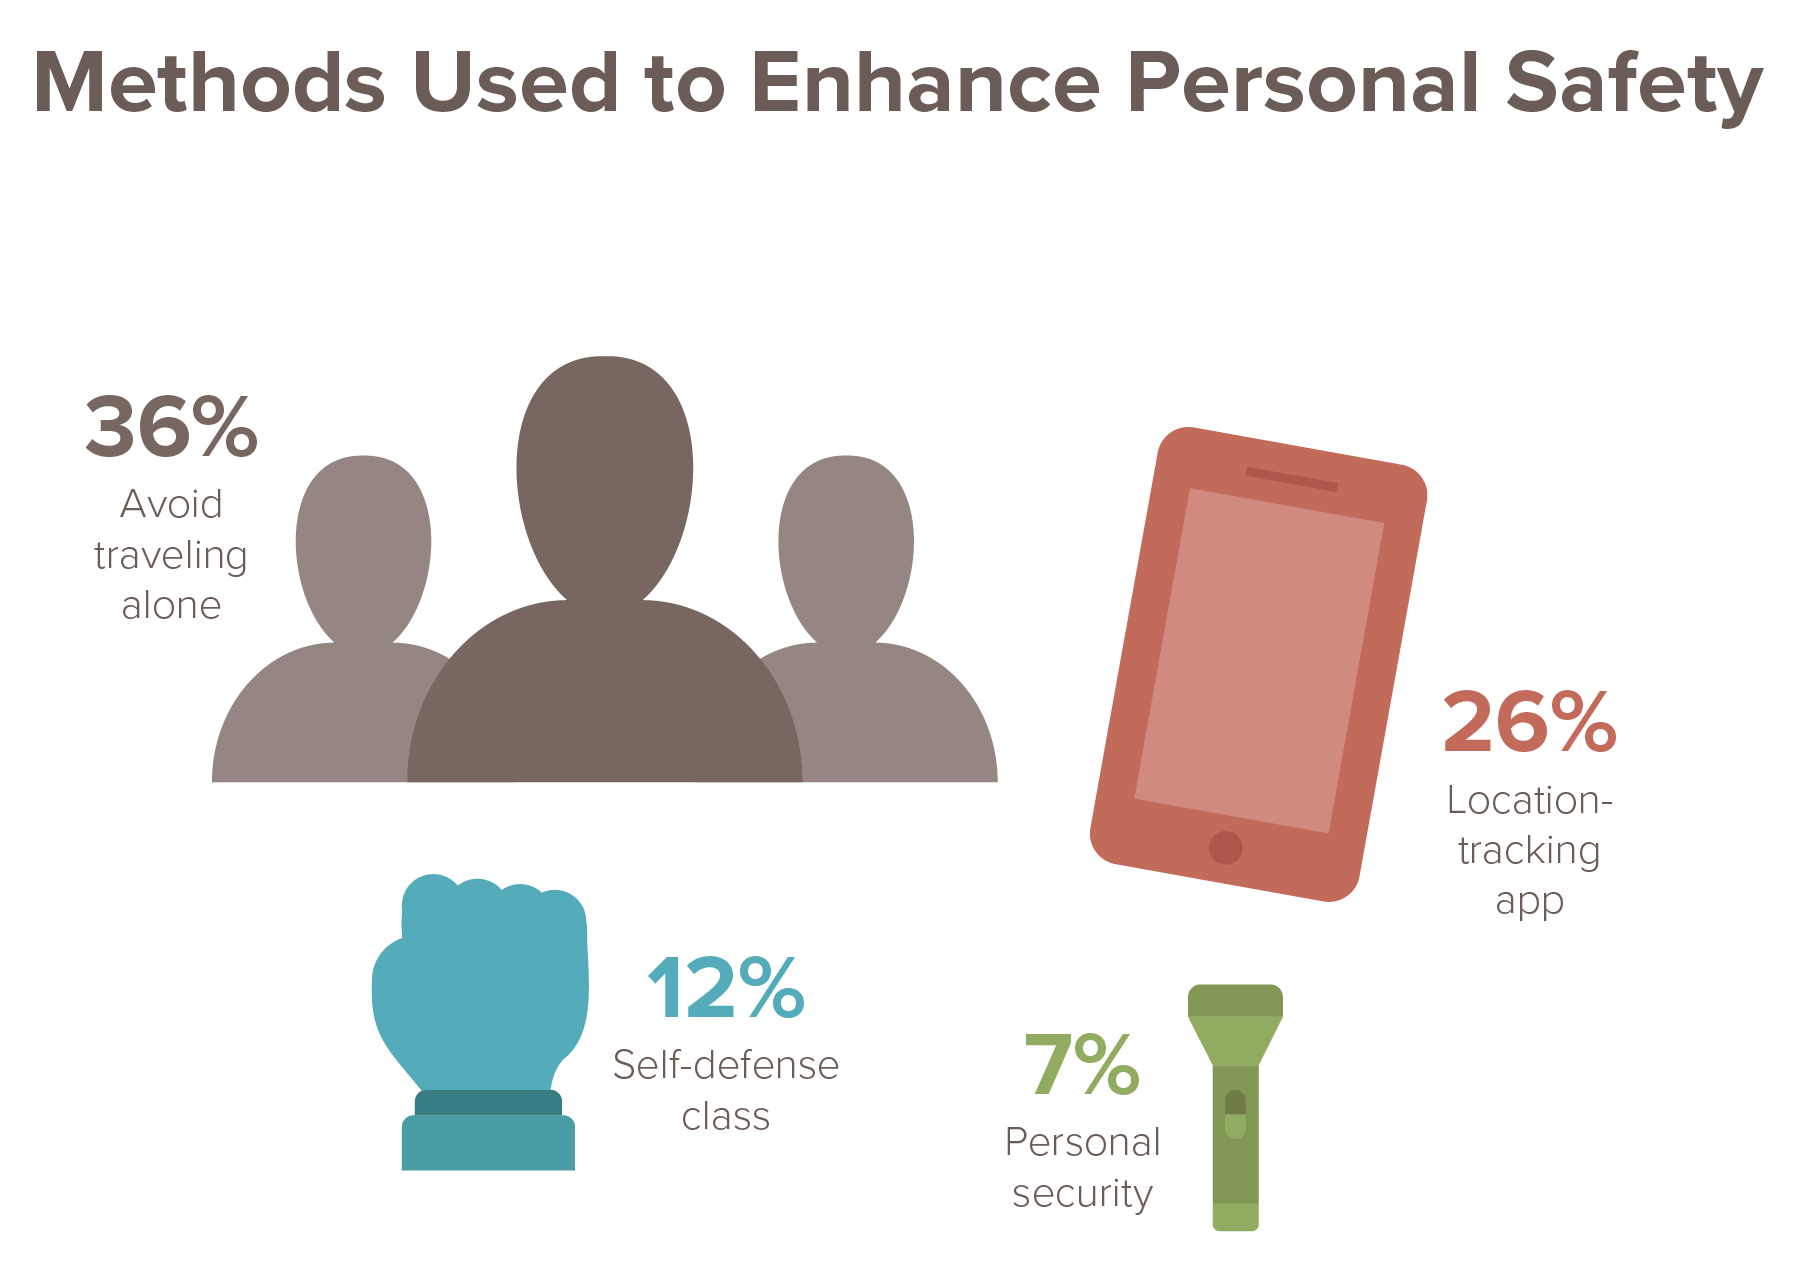 methods used to enhance personal safety